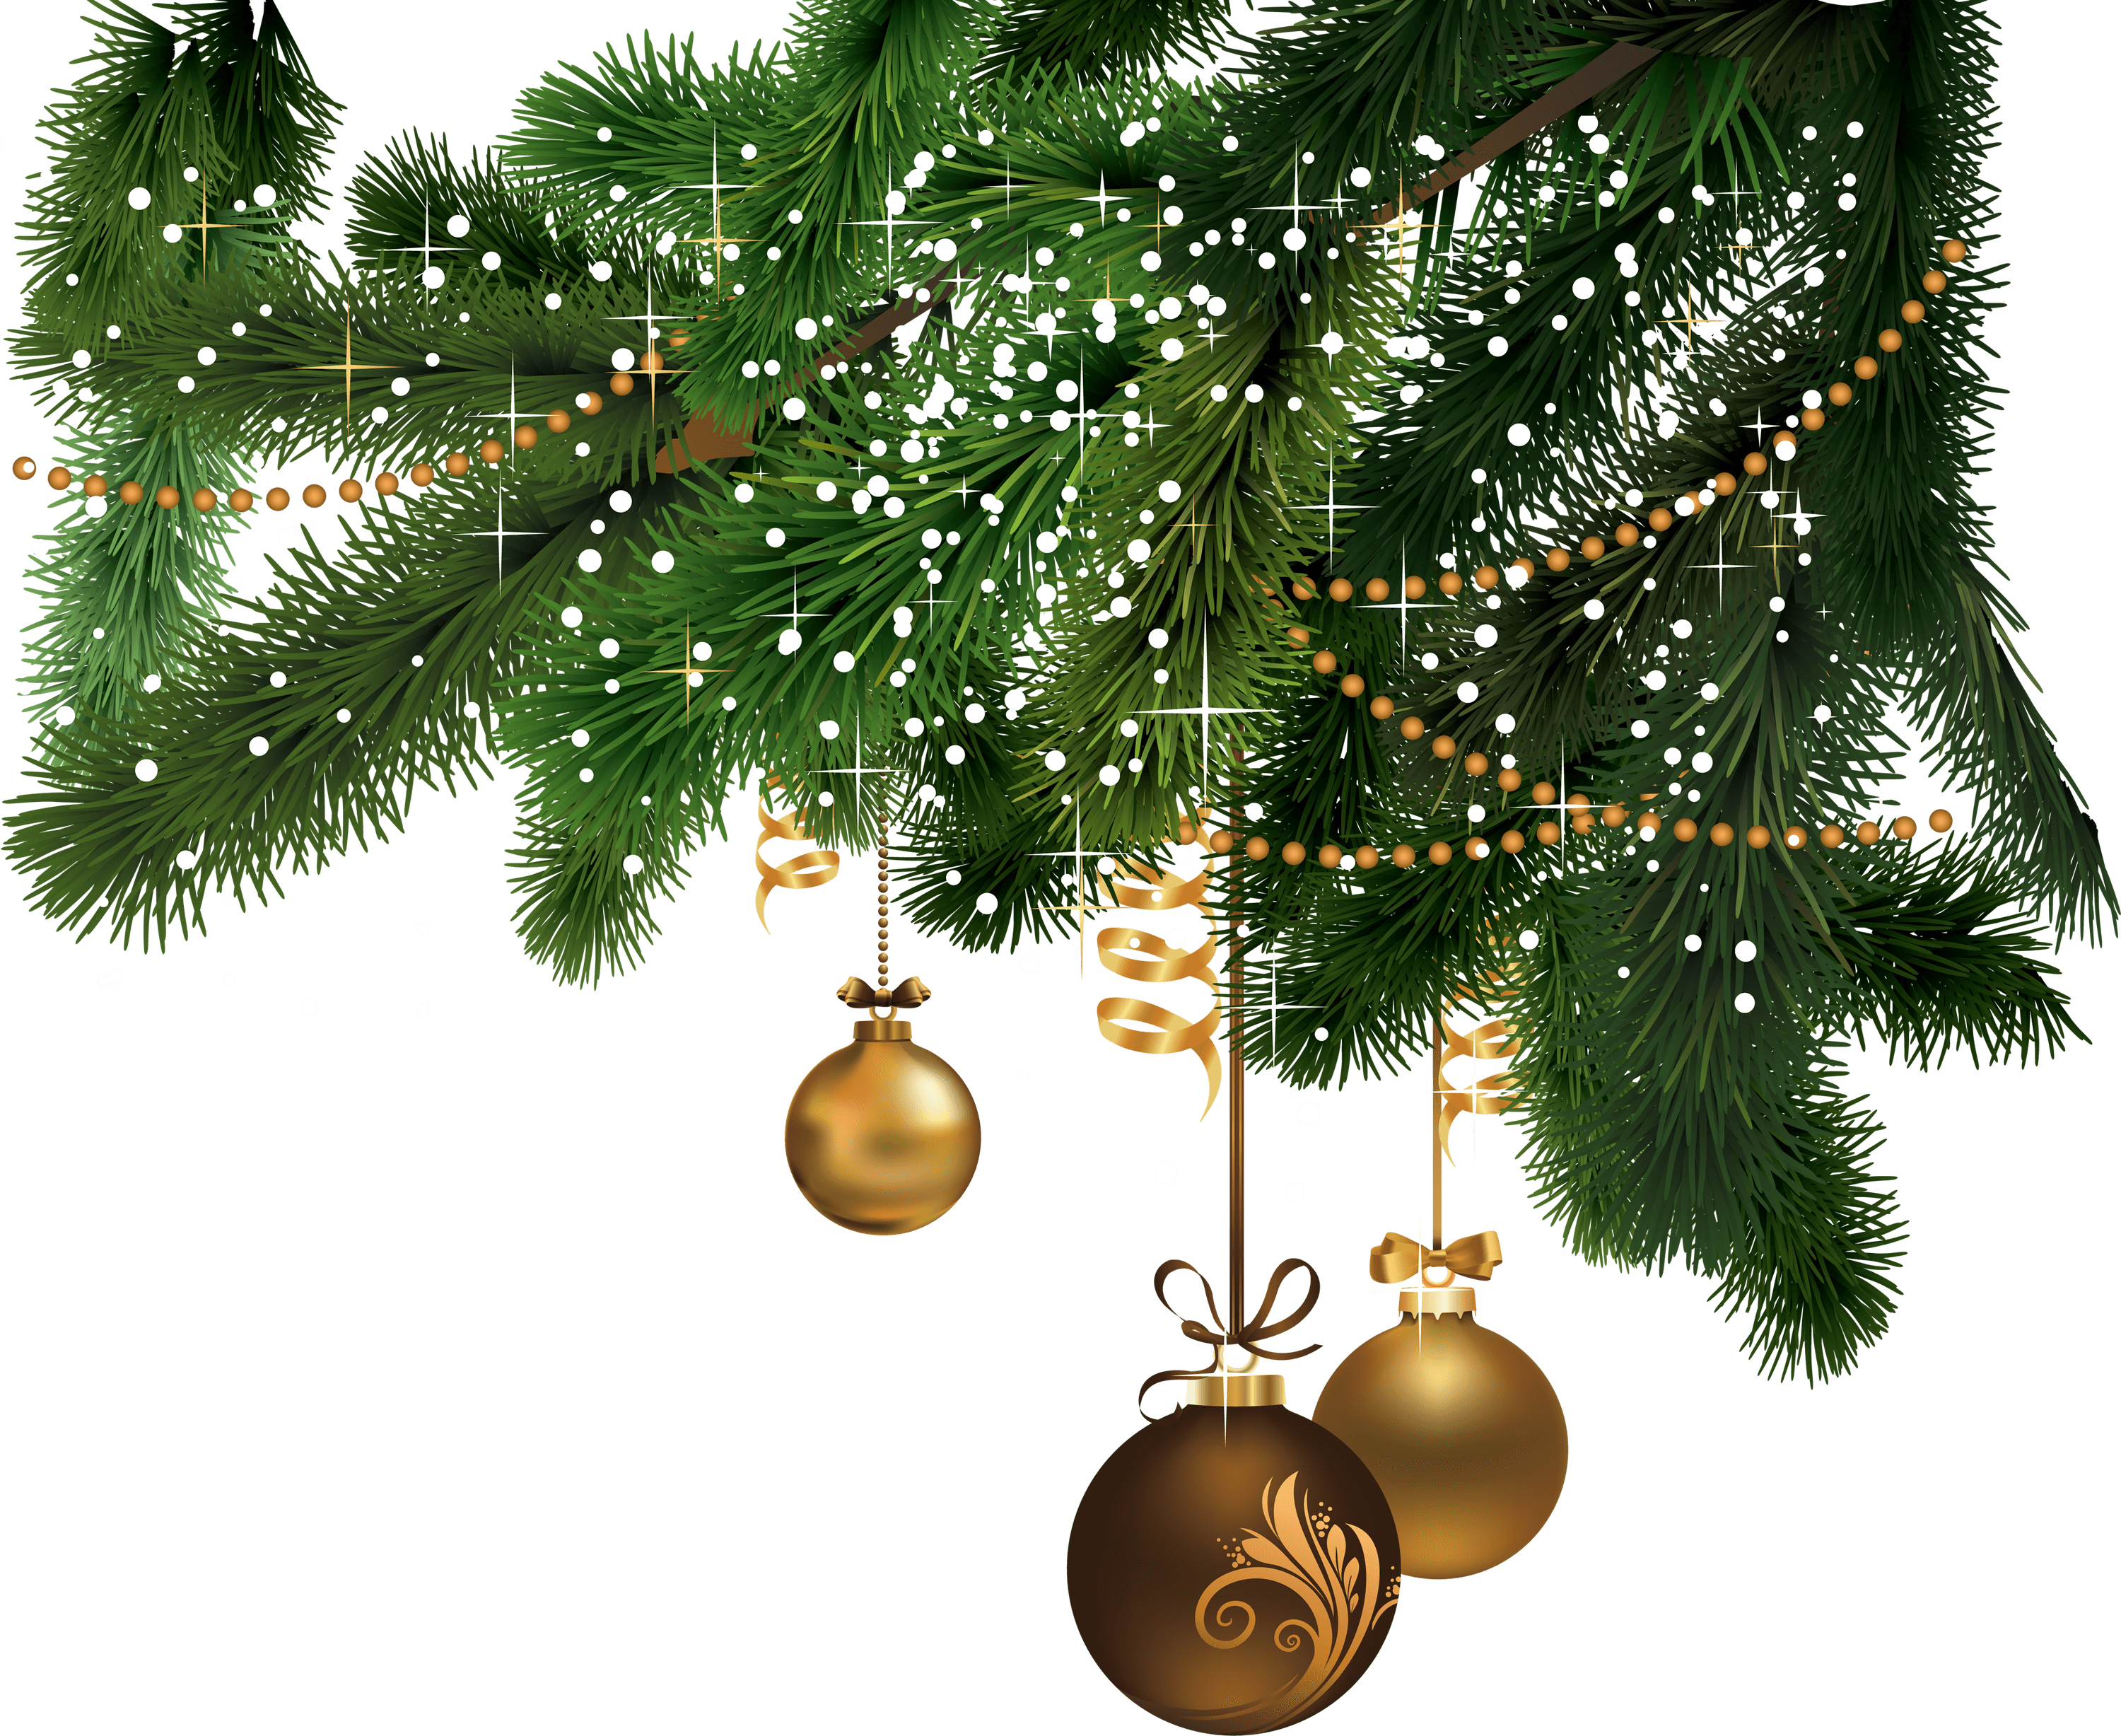 Christmas Branch Png.Christmas Right Corner Transparent Png Stickpng